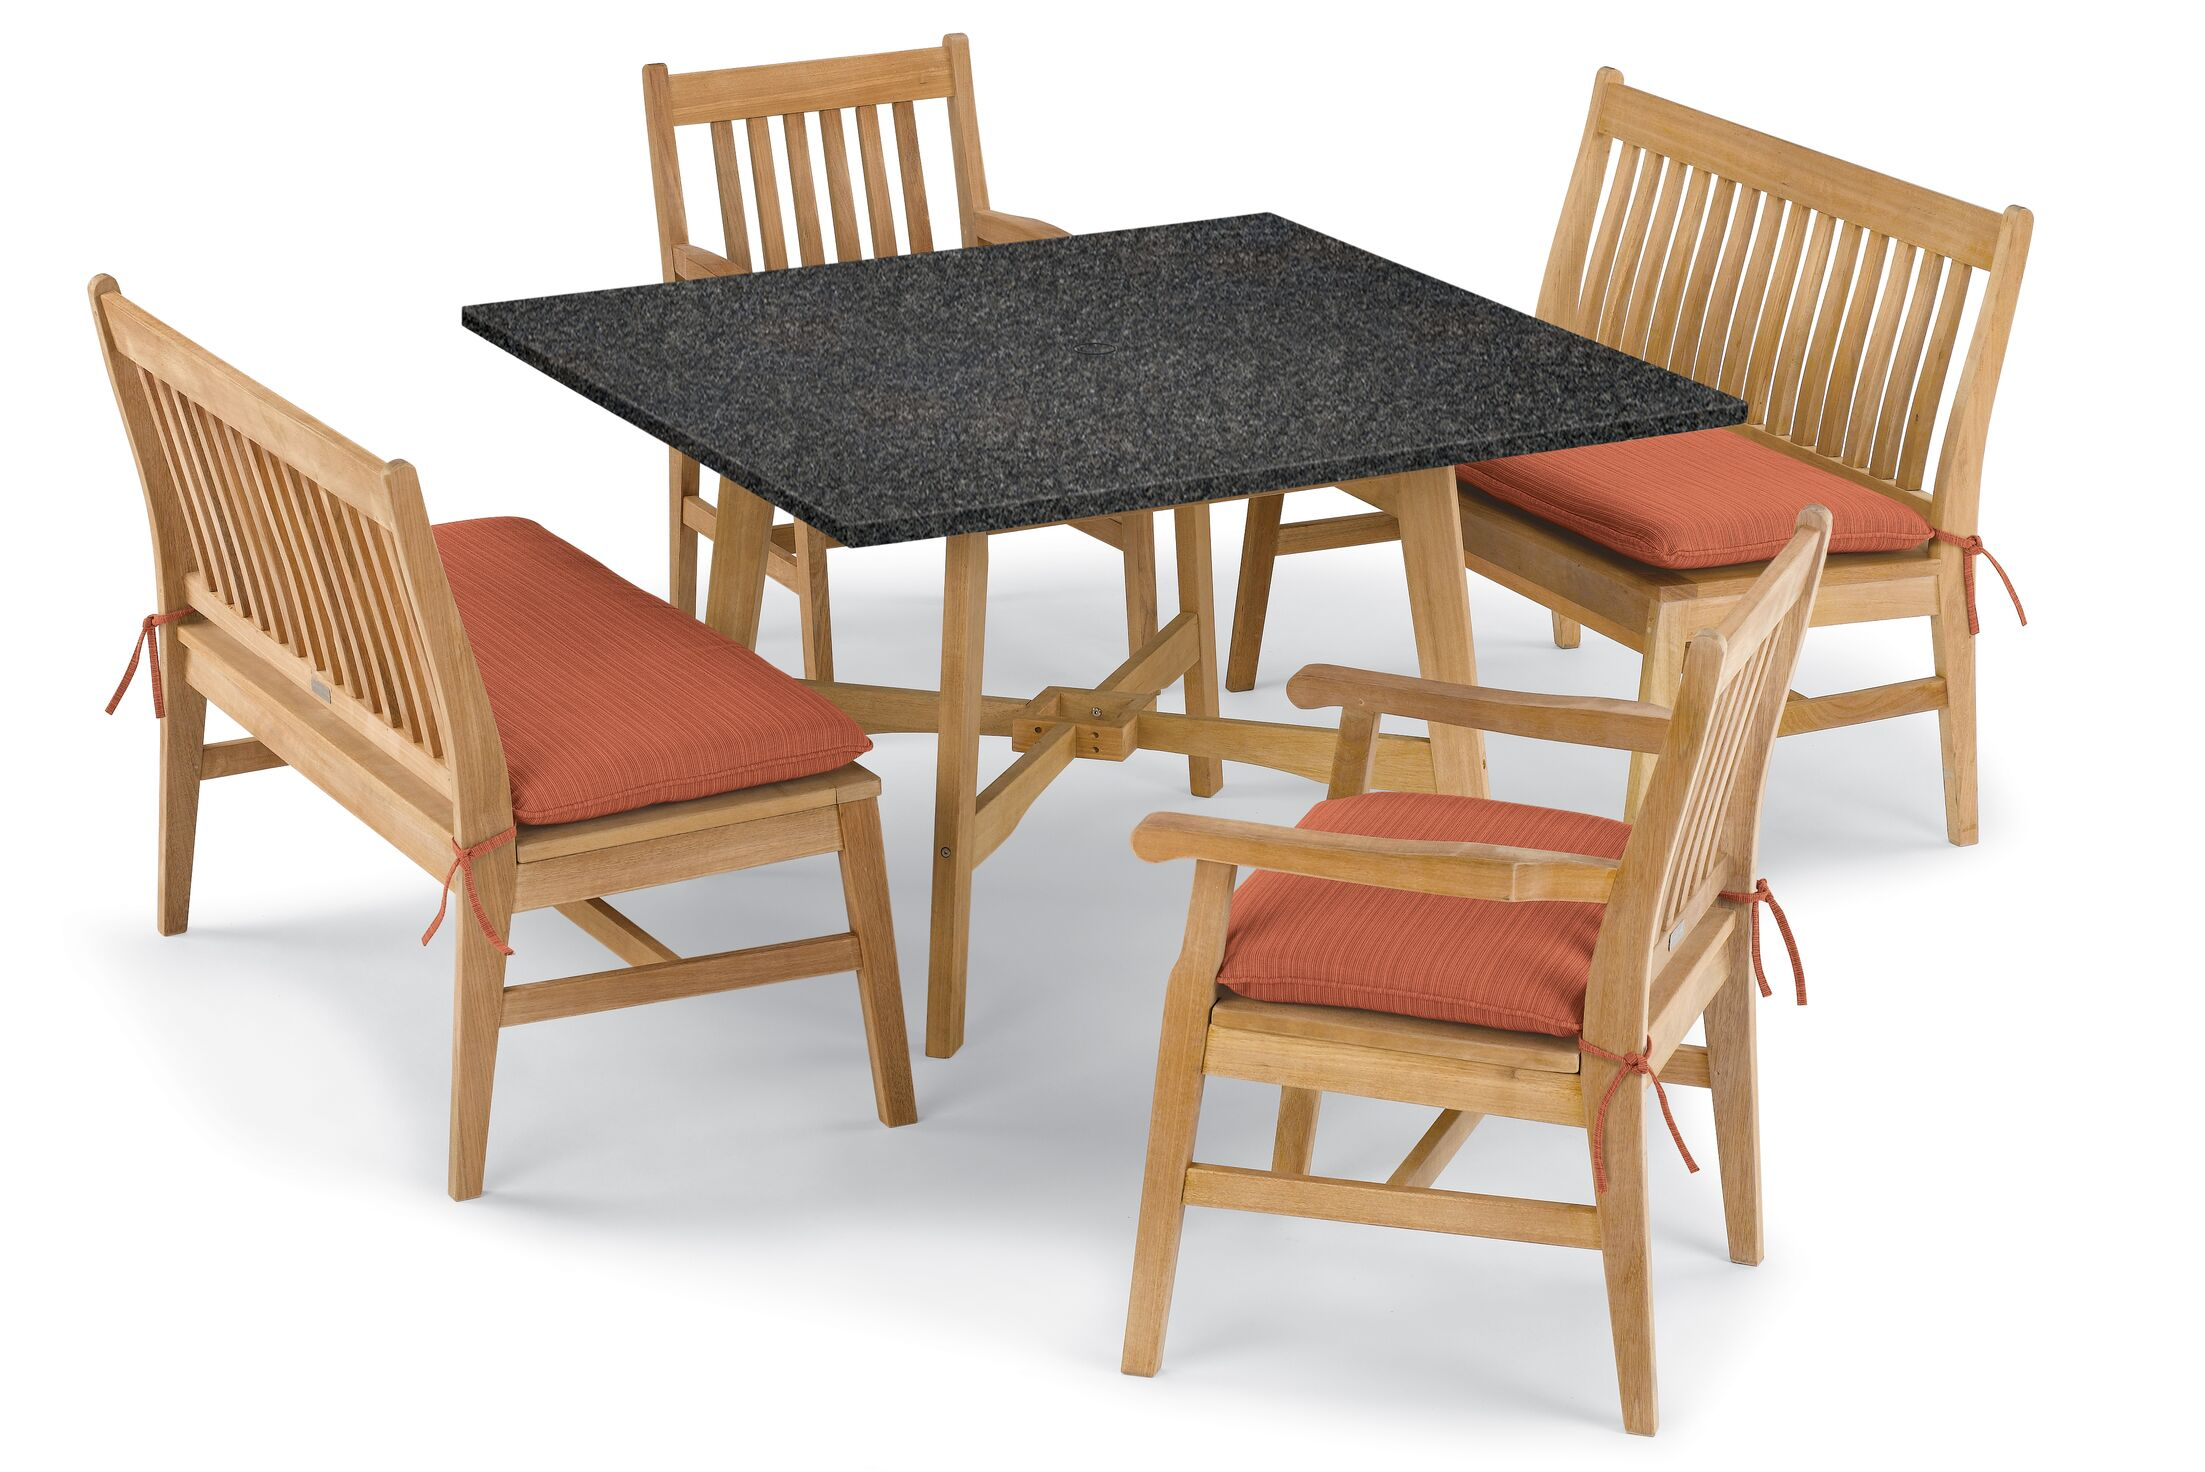 Laney 5 Piece Dining Set with Cushions Cushion Color: Dupione Papaya , Table Top Color: Charcoal, Color: Natural